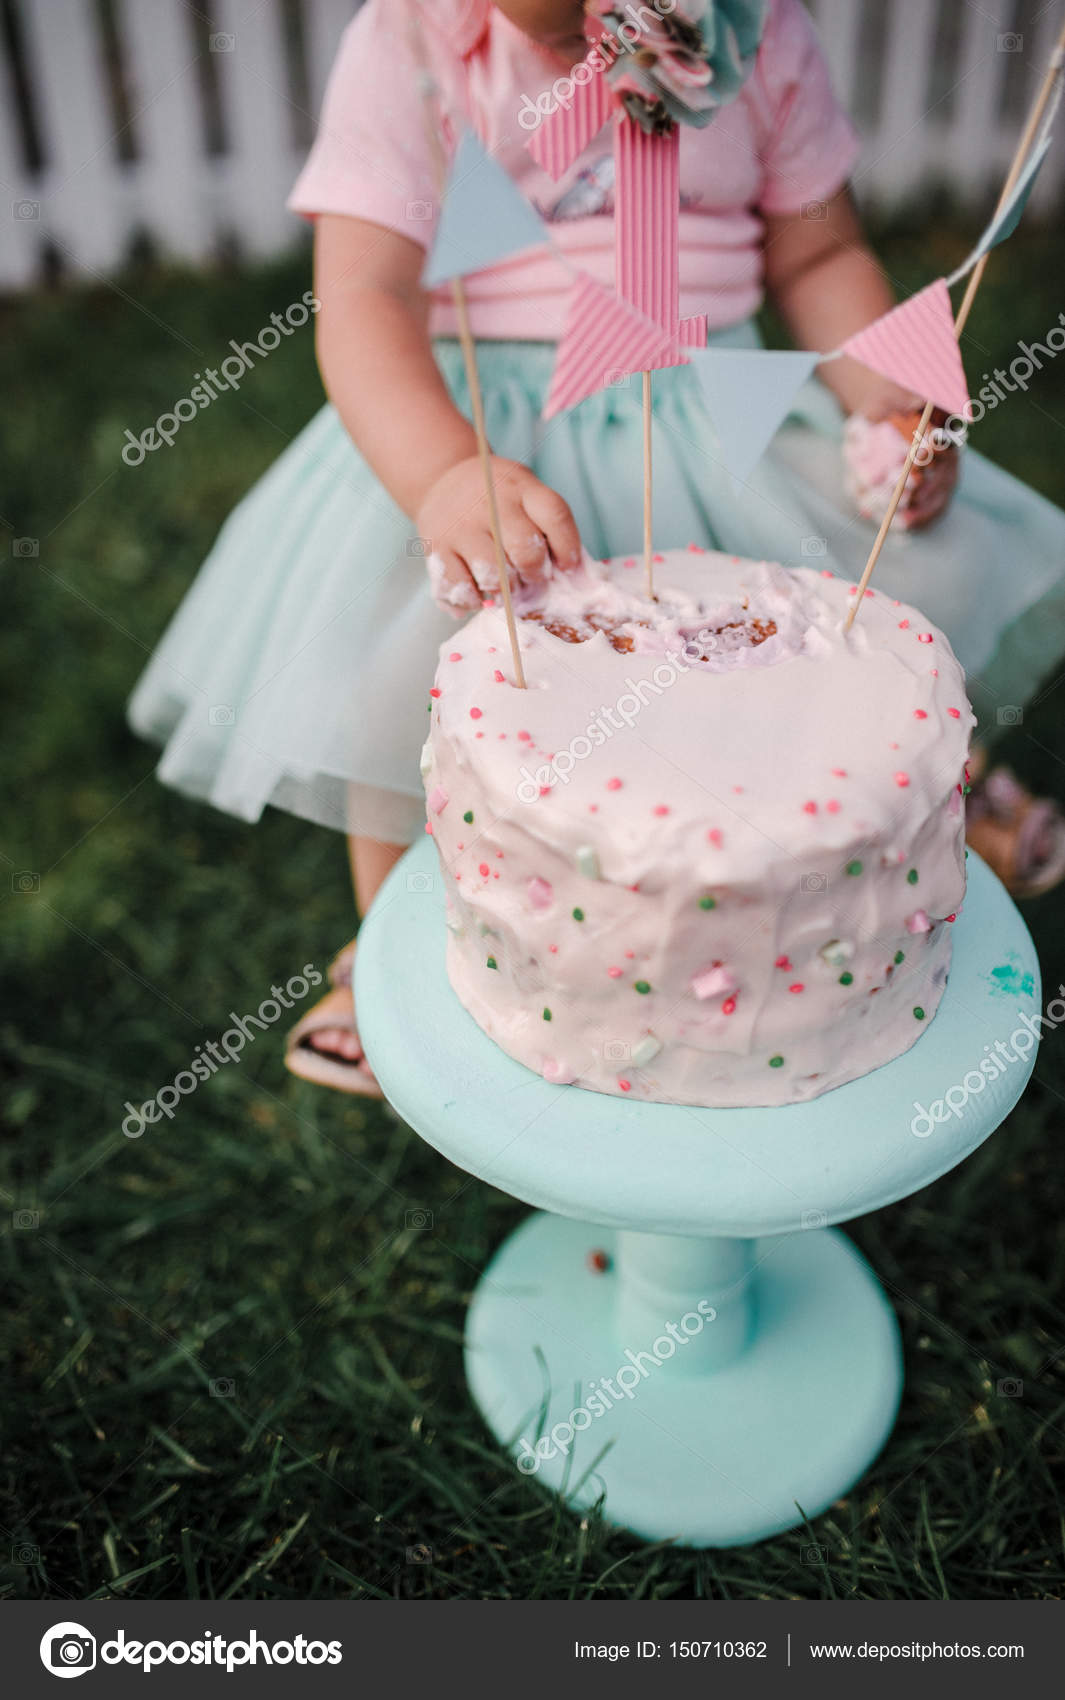 A Birthday Cake For The First Birthday Of The Girl Girl Hands T